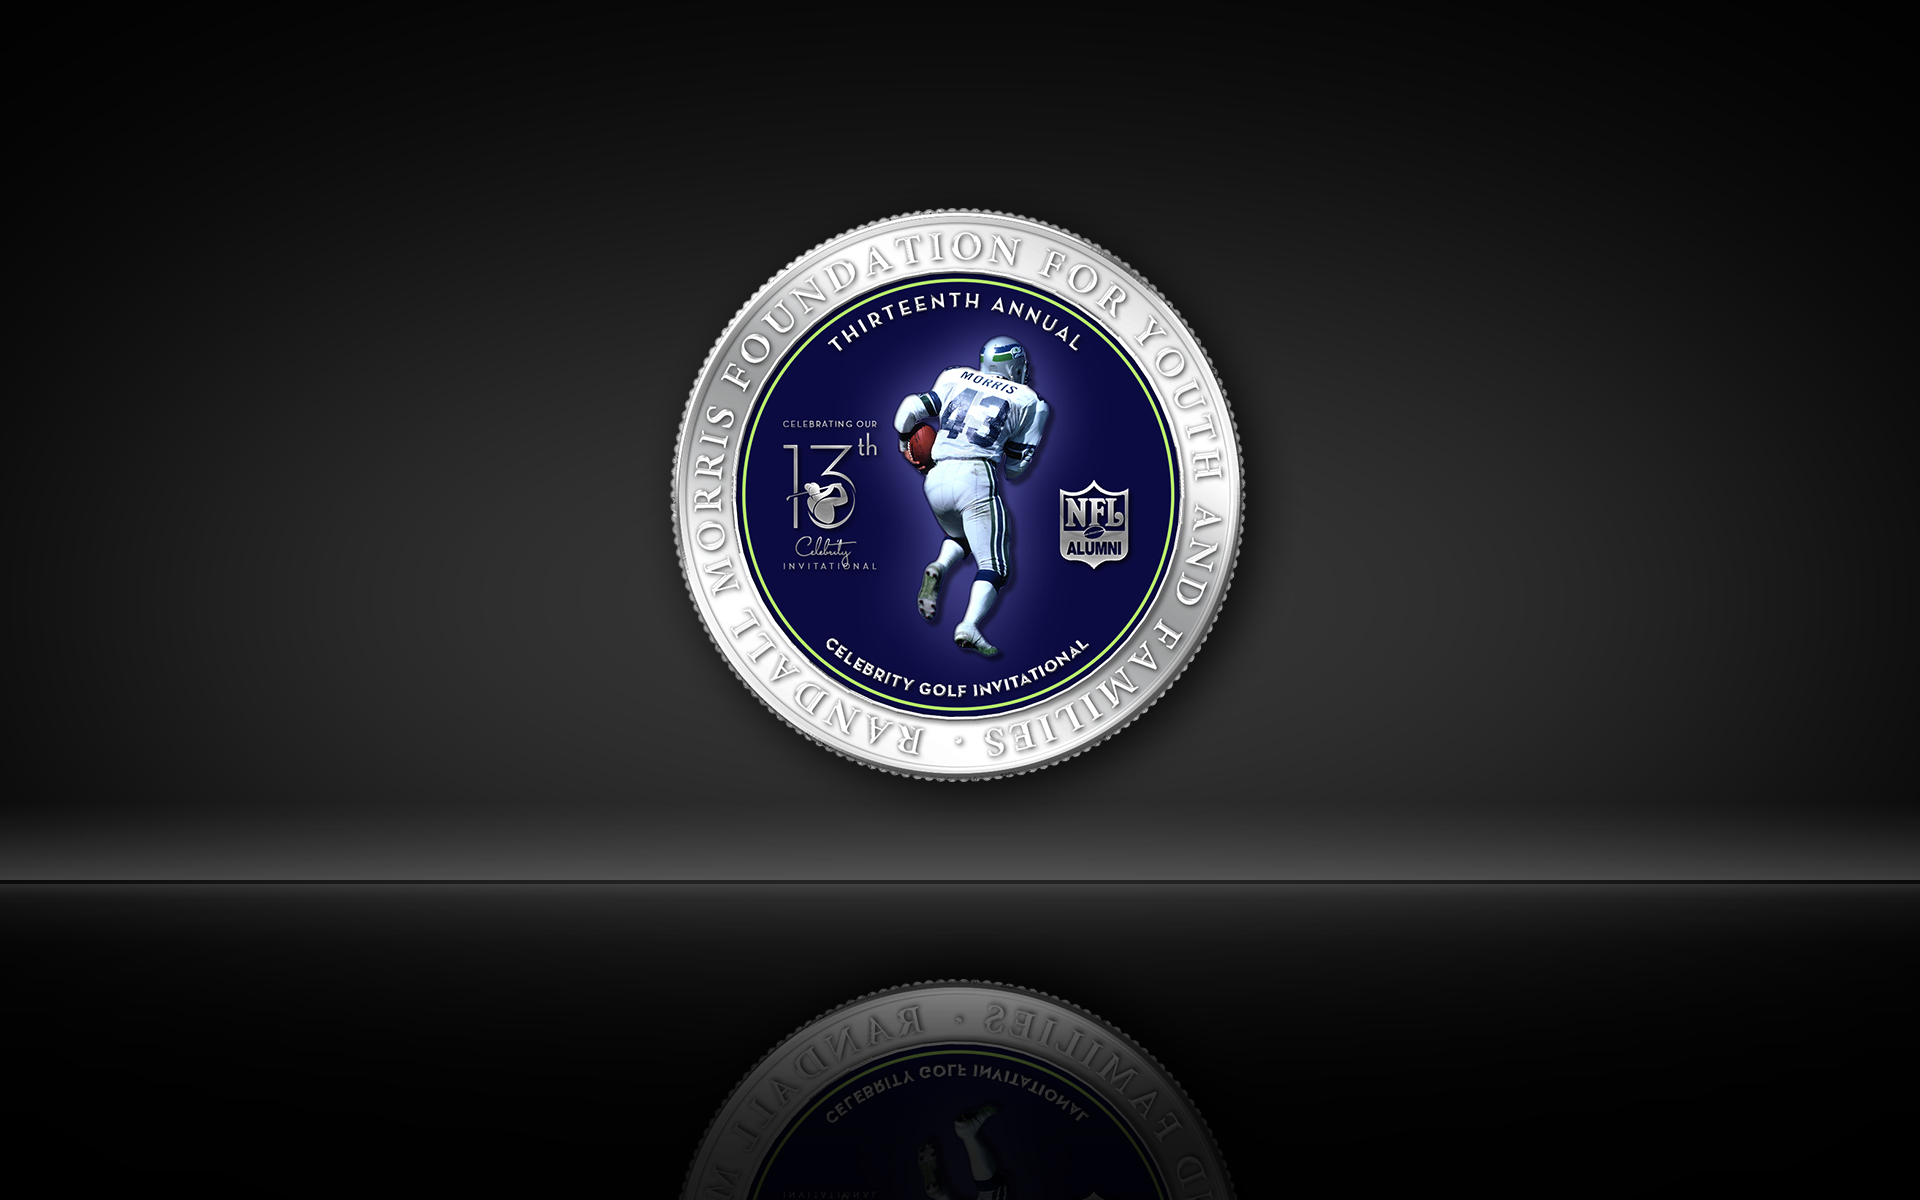 Randall Morris Foundation for Youth and Families Annual Celebrity Golf Event NFL Logo Medallion Coin Logo by Graham Hnedak Brand G Creative 18 June 2019.jpg